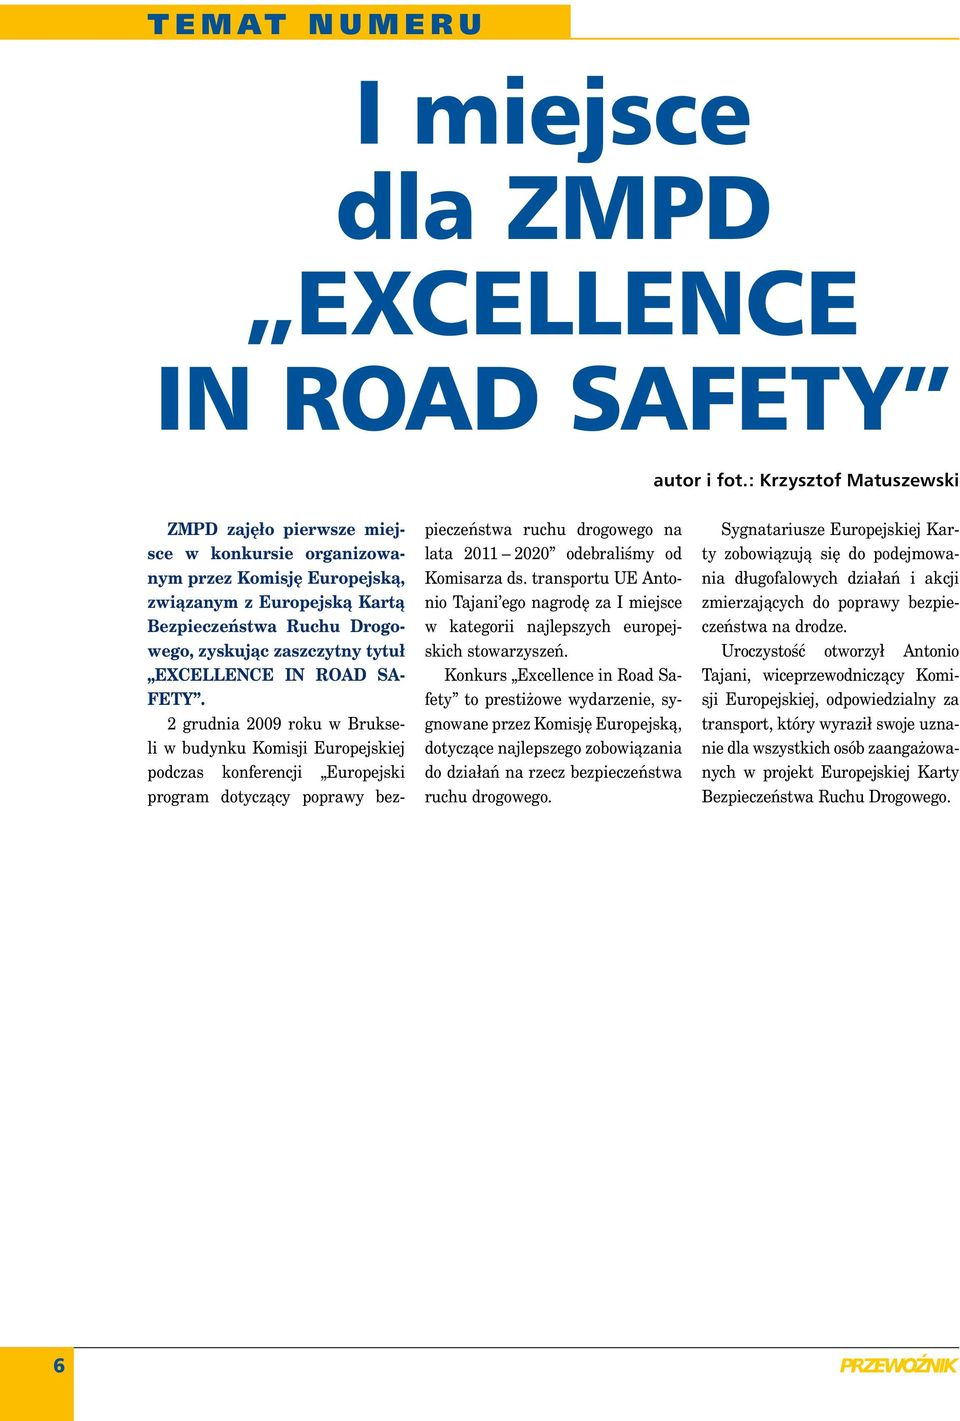 EXCELLENCE IN ROAD SA- FETY.